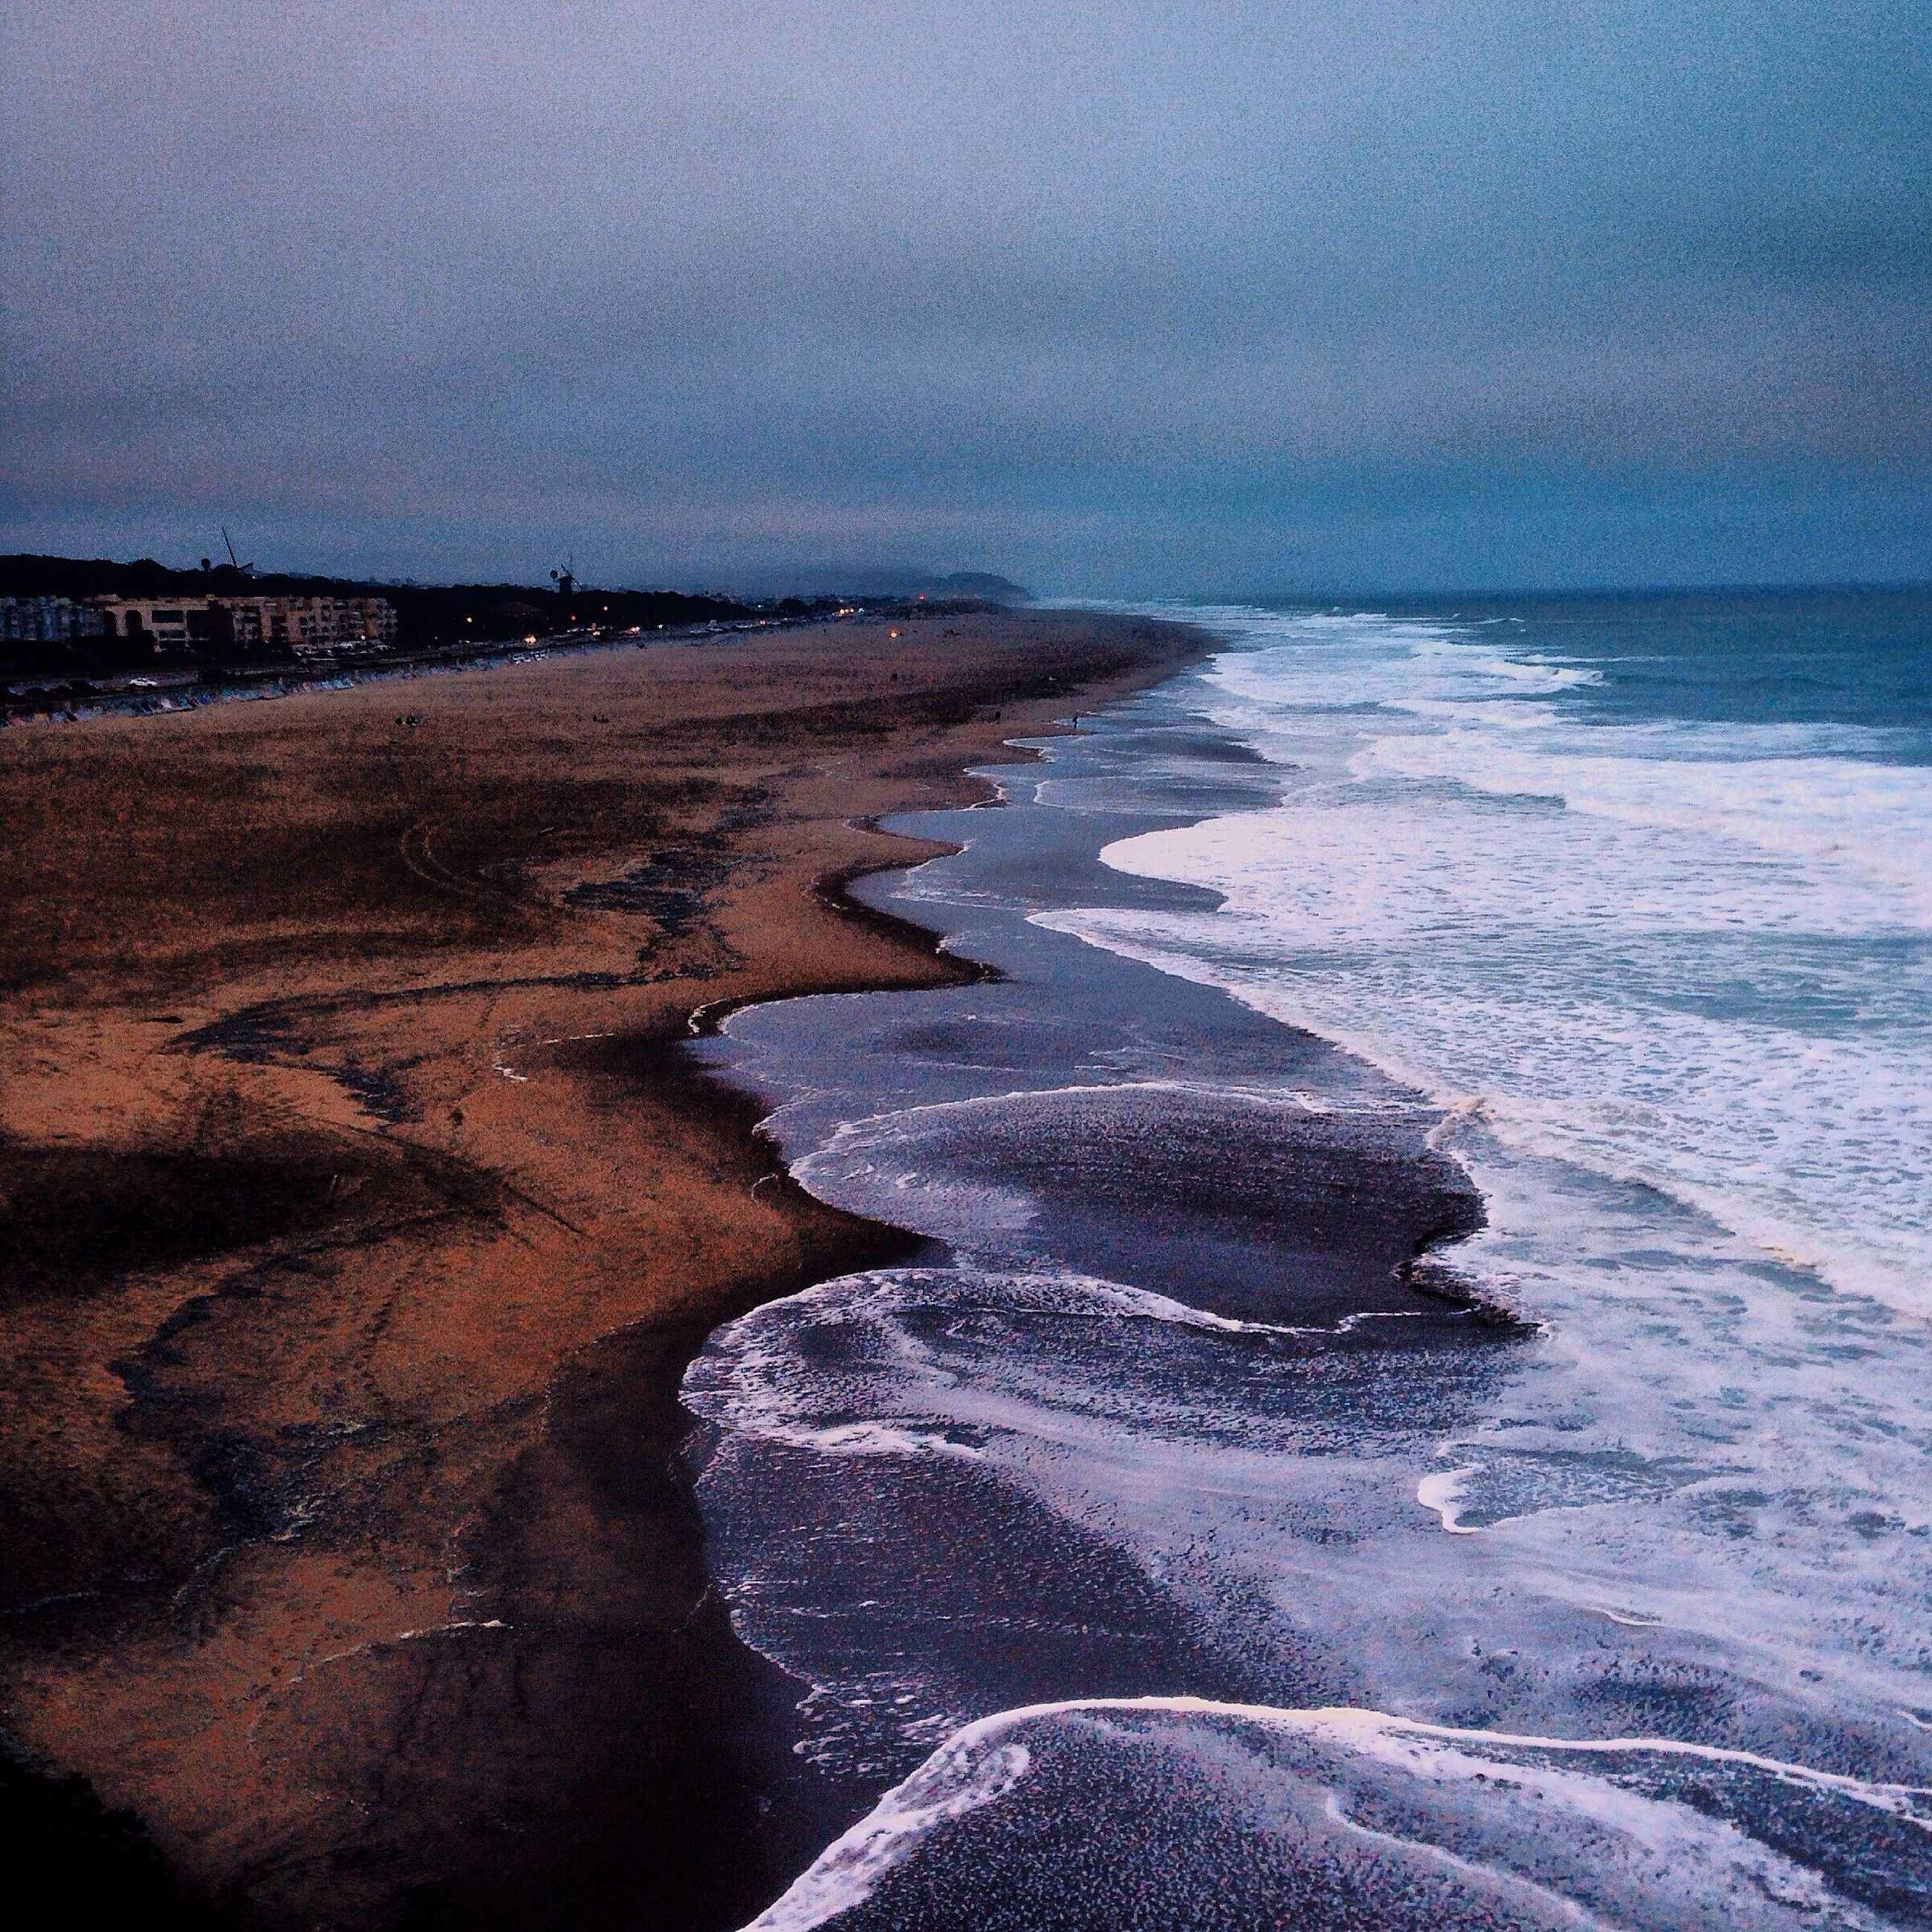 sea, beach, horizon over water, water, tranquil scene, tranquility, scenics, beauty in nature, sky, shore, nature, sand, idyllic, coastline, weather, remote, wave, cold temperature, outdoors, cloud - sky